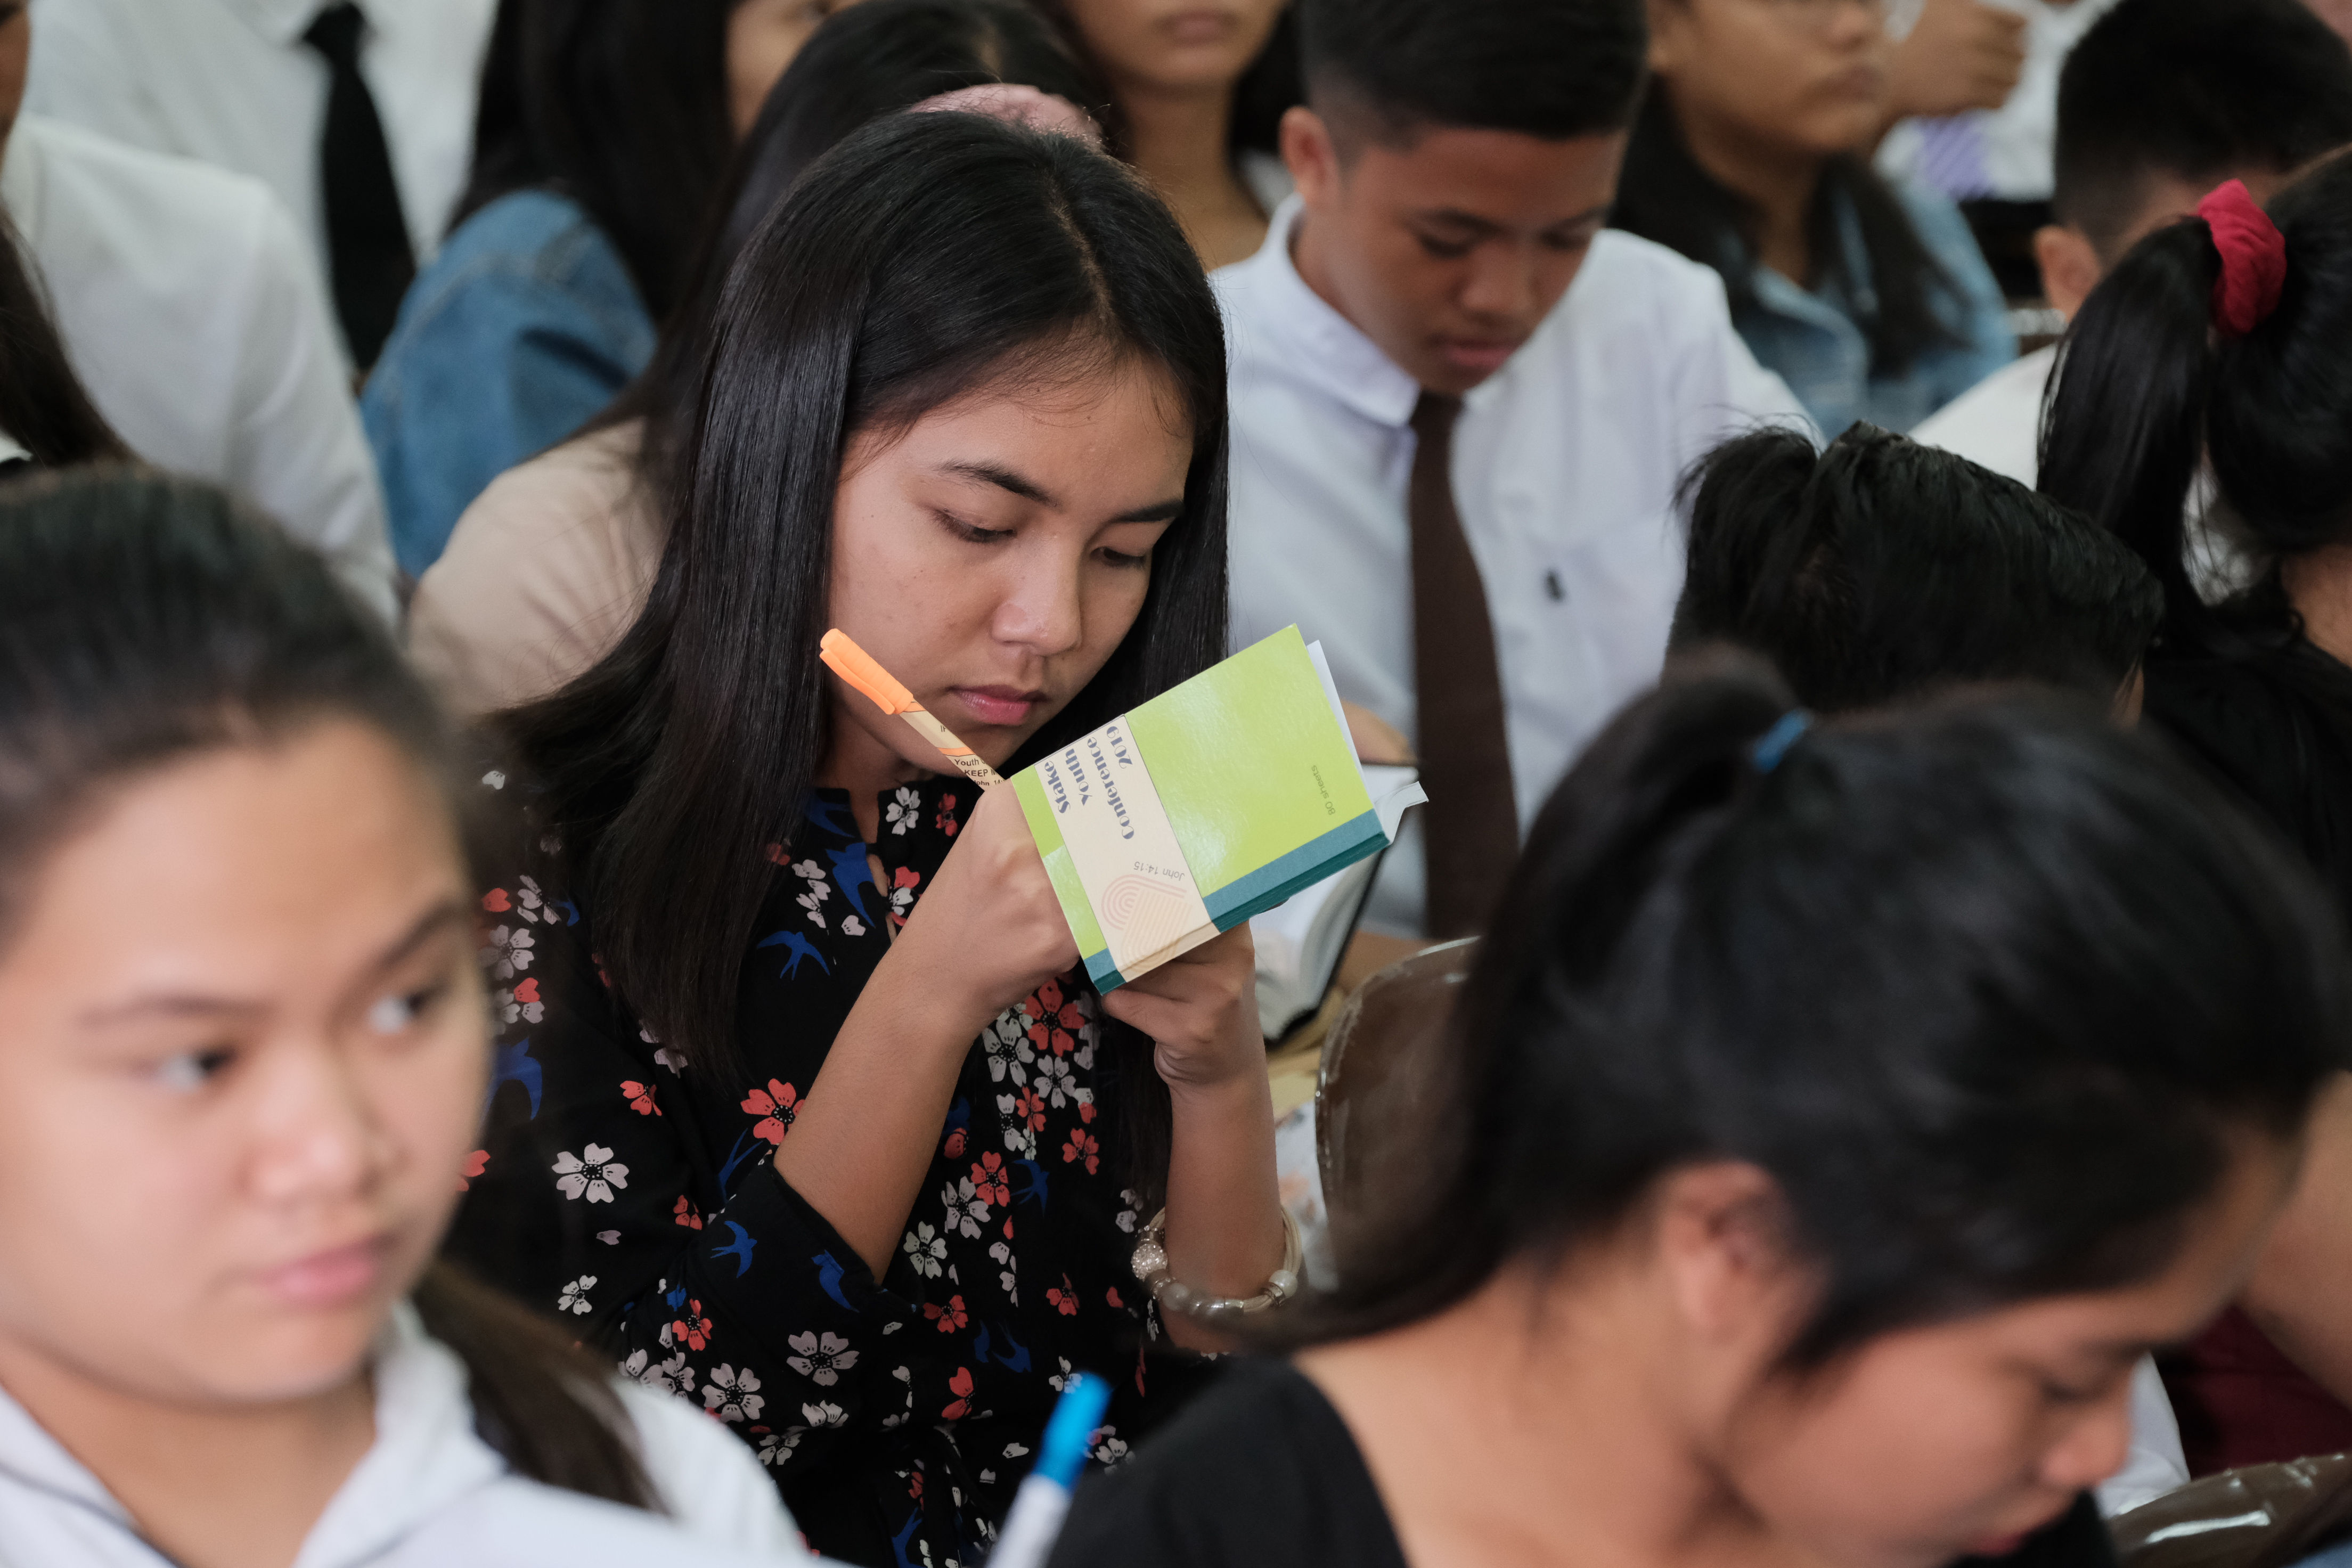 Youth members take notes during a devotional with Elder Dale G. Renlund in Bacolod, Philippines, during his recent visit to the island nation.